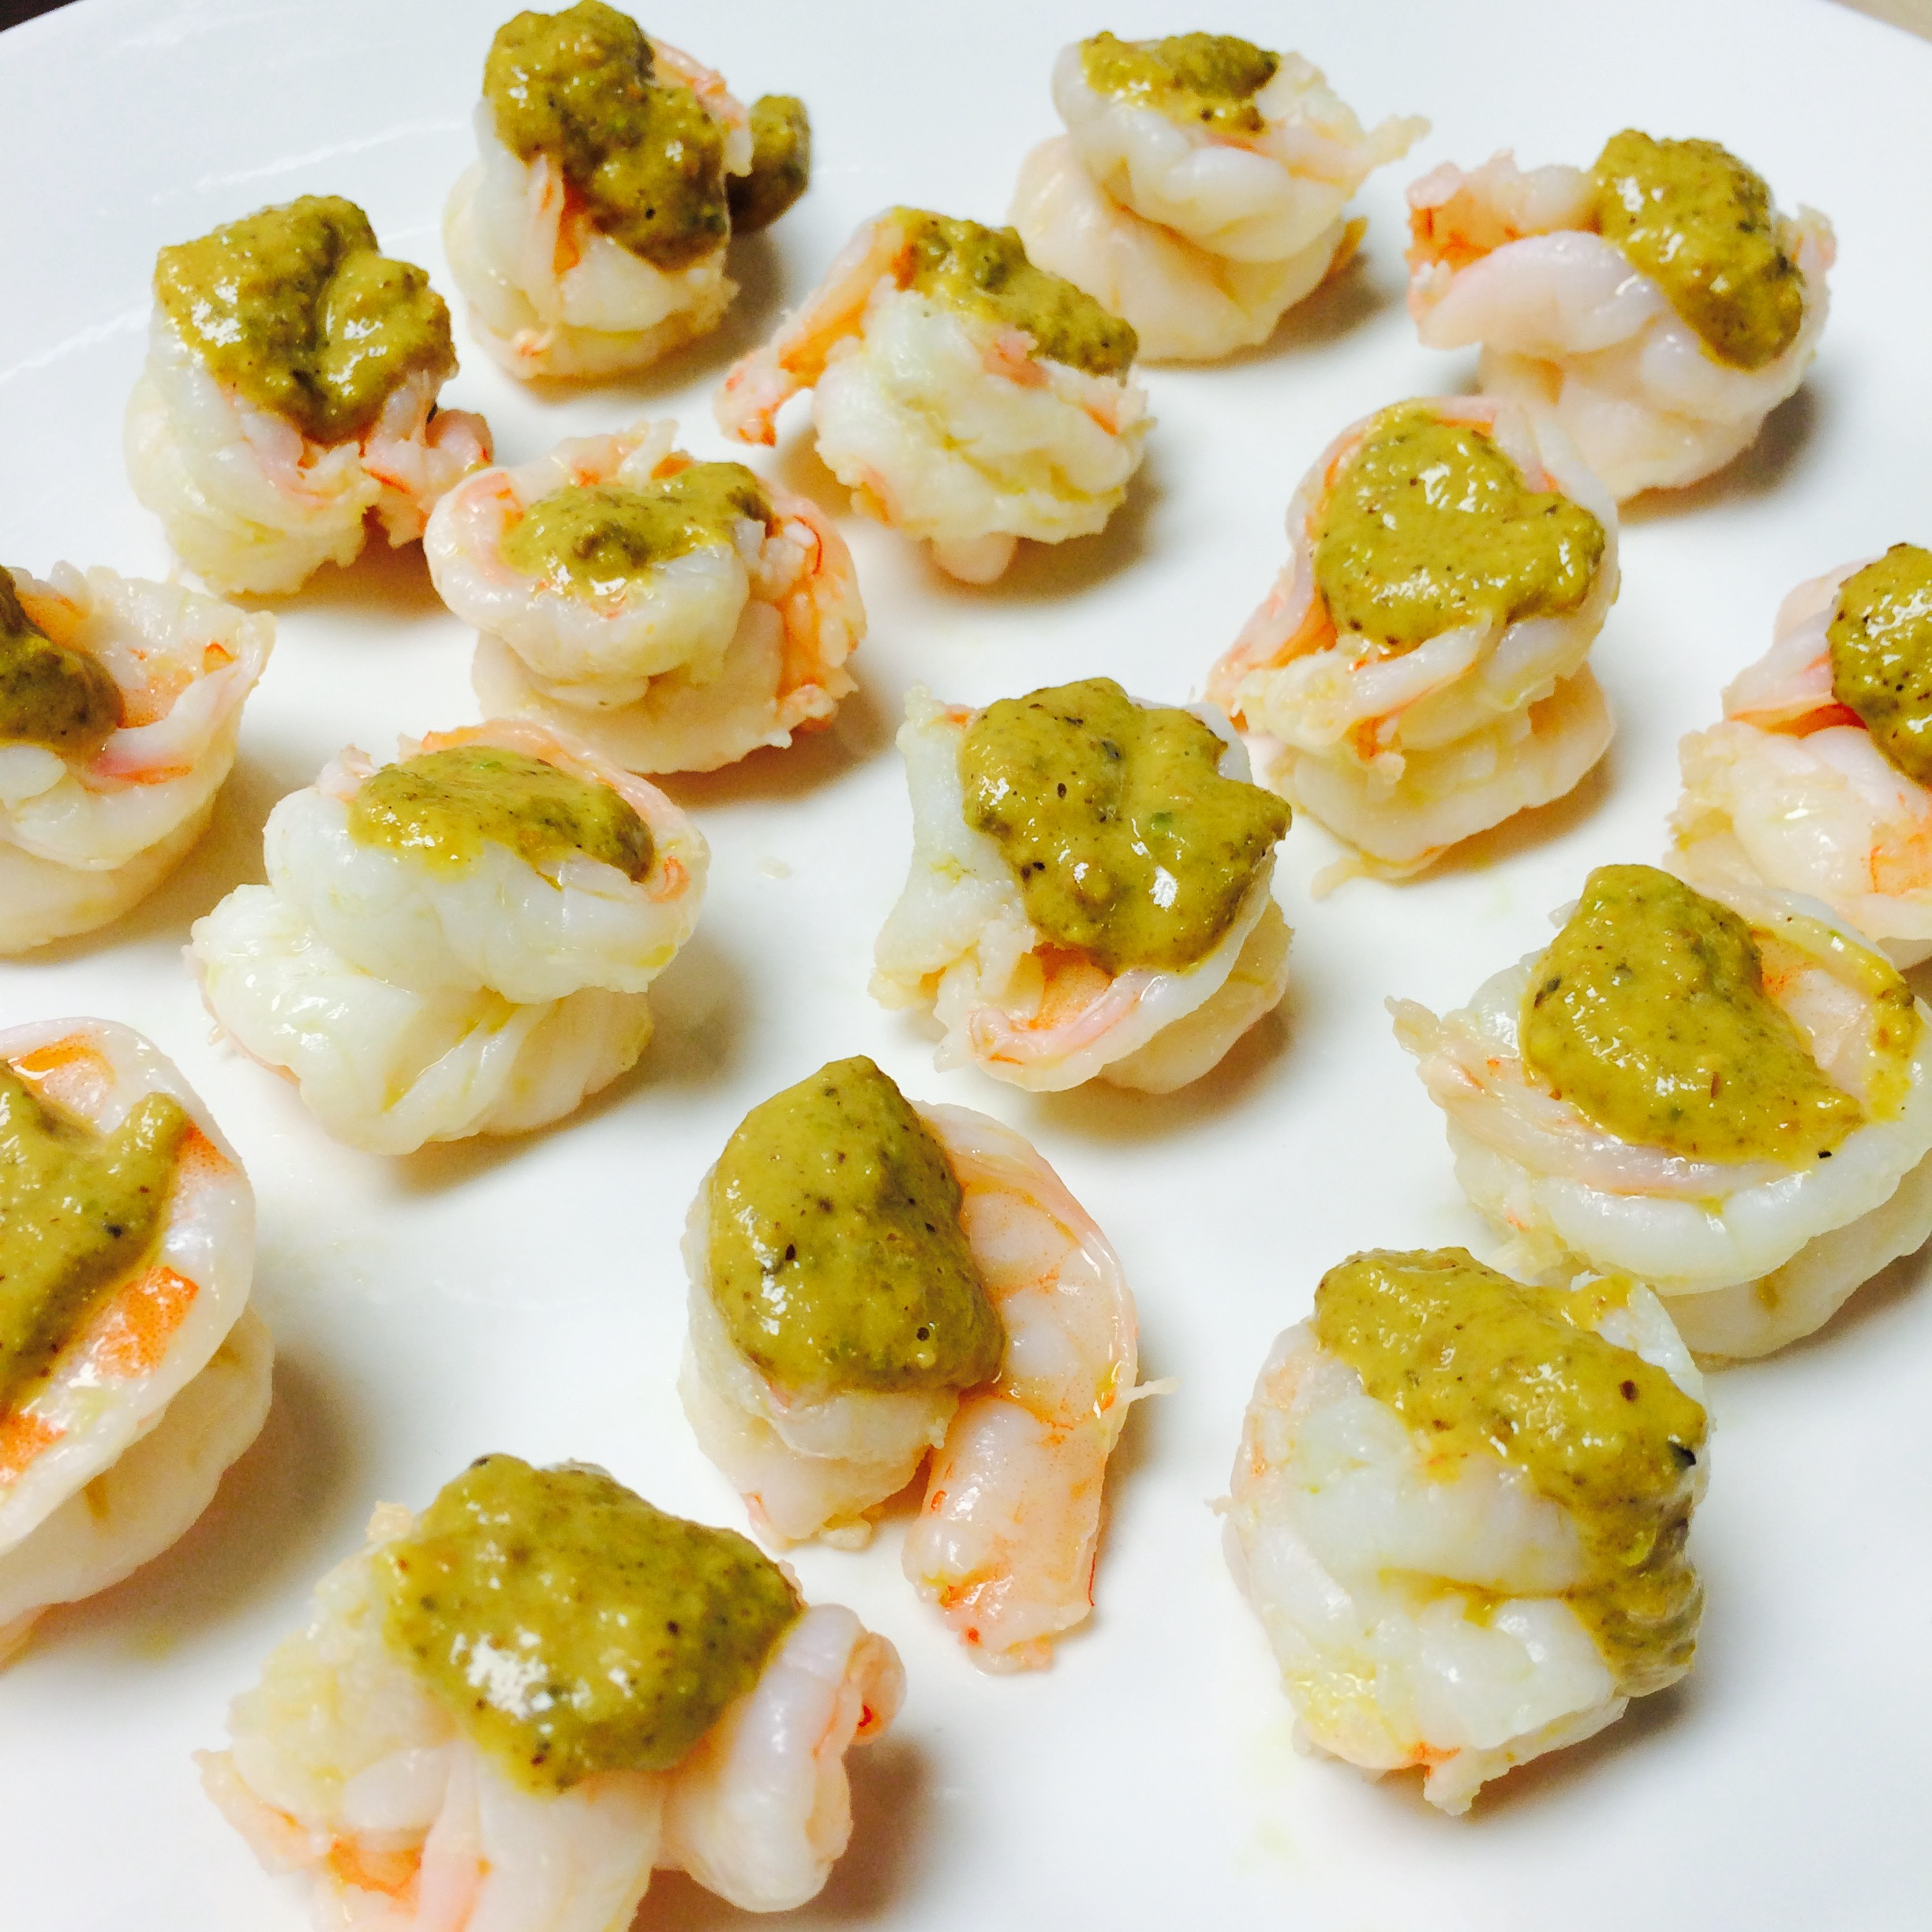 shrimp topped with a green sauce